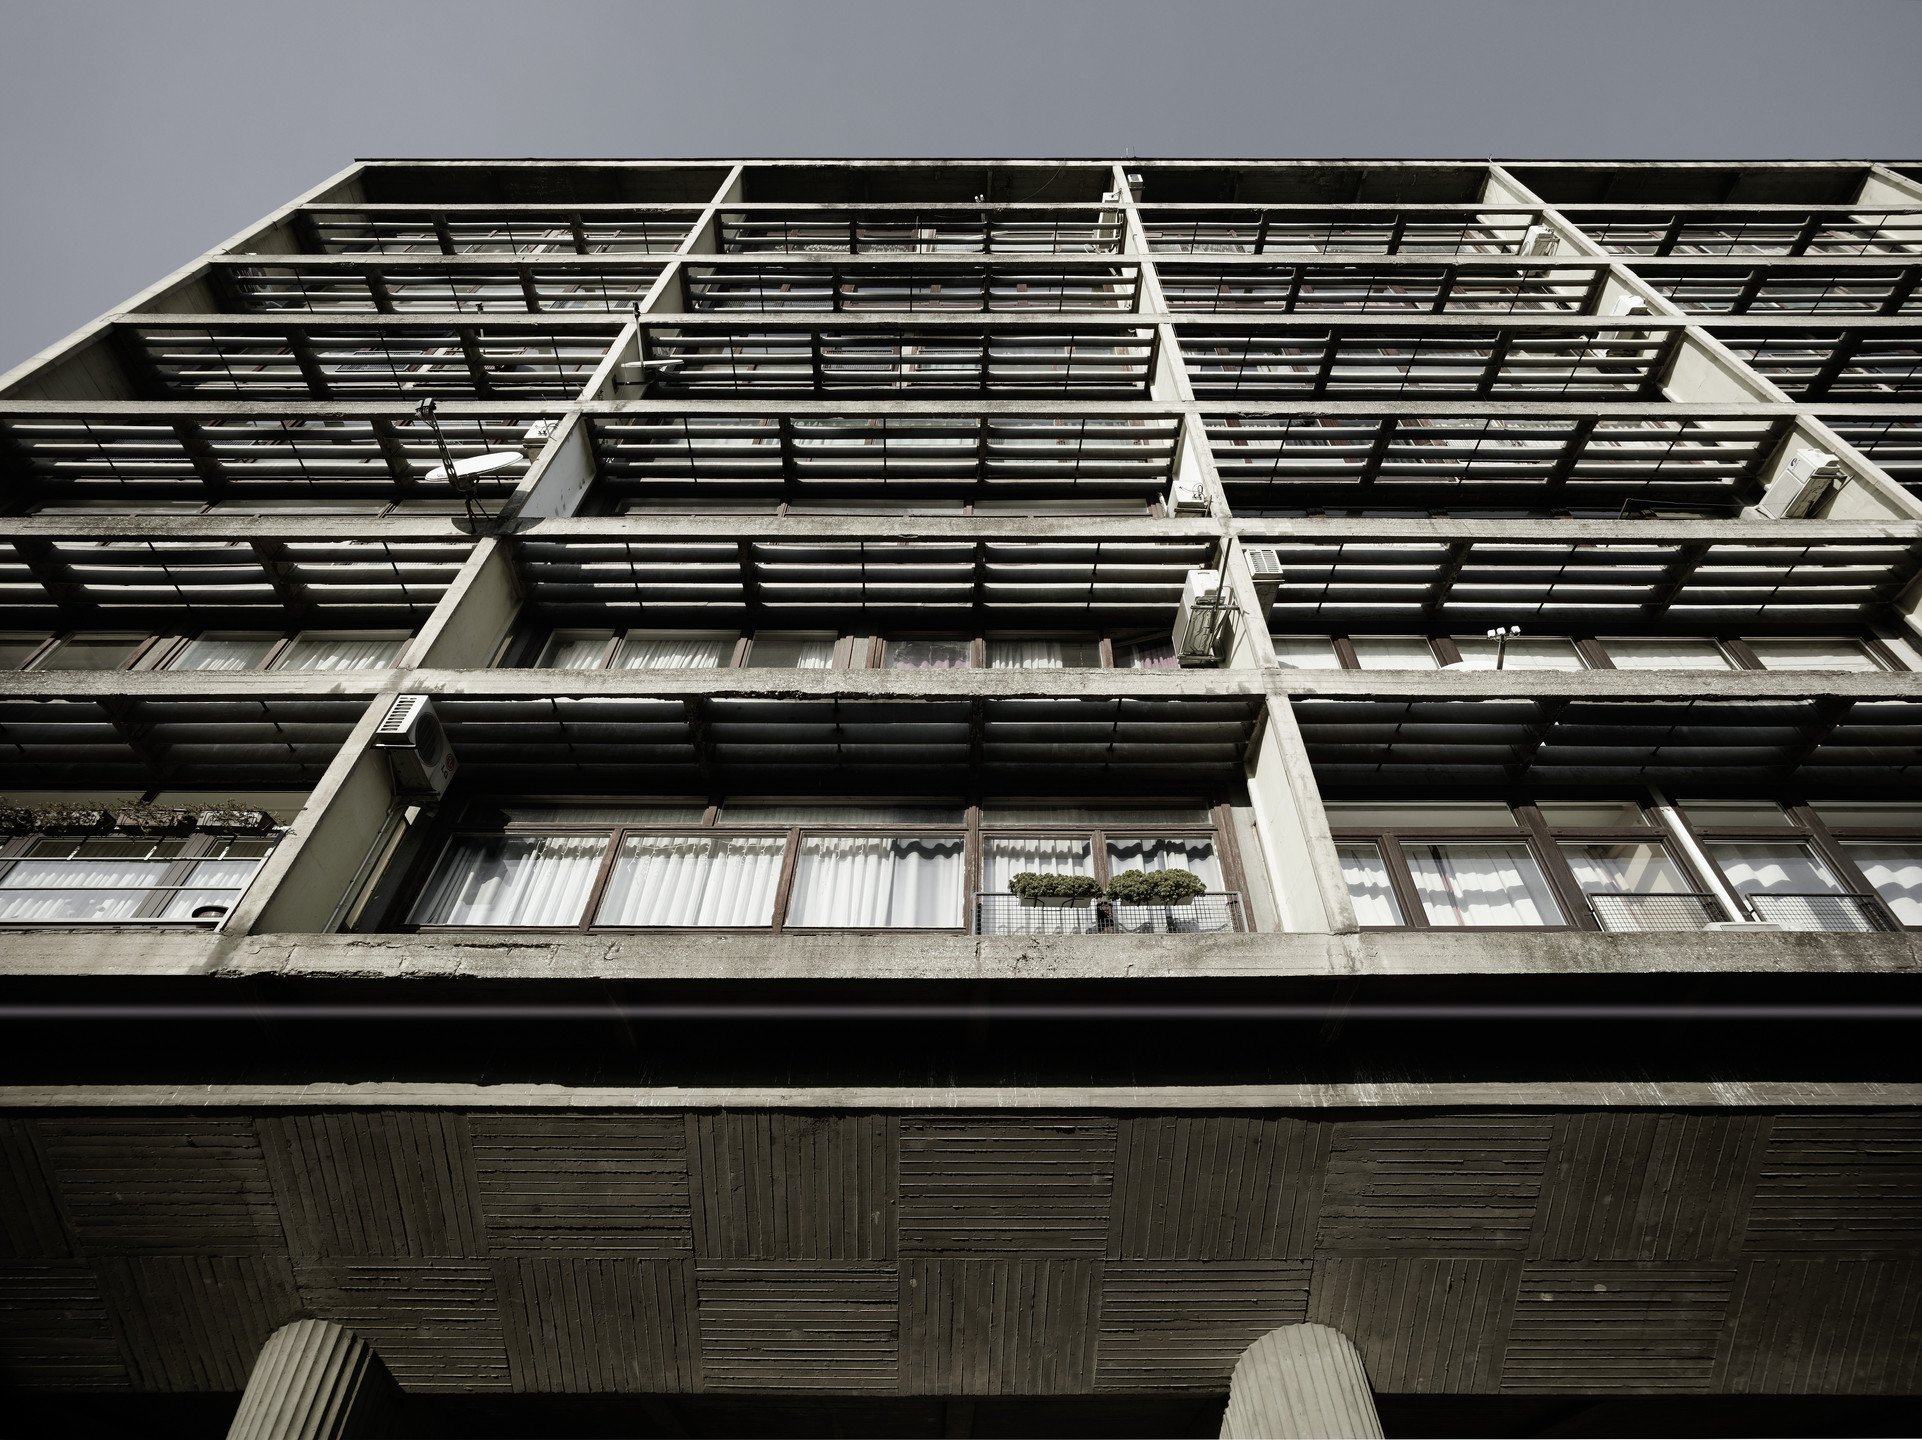 Valentin Jeck, Drago Galić. Apartment Building of the Military Directorate, Zagreb, Croatia. 2016